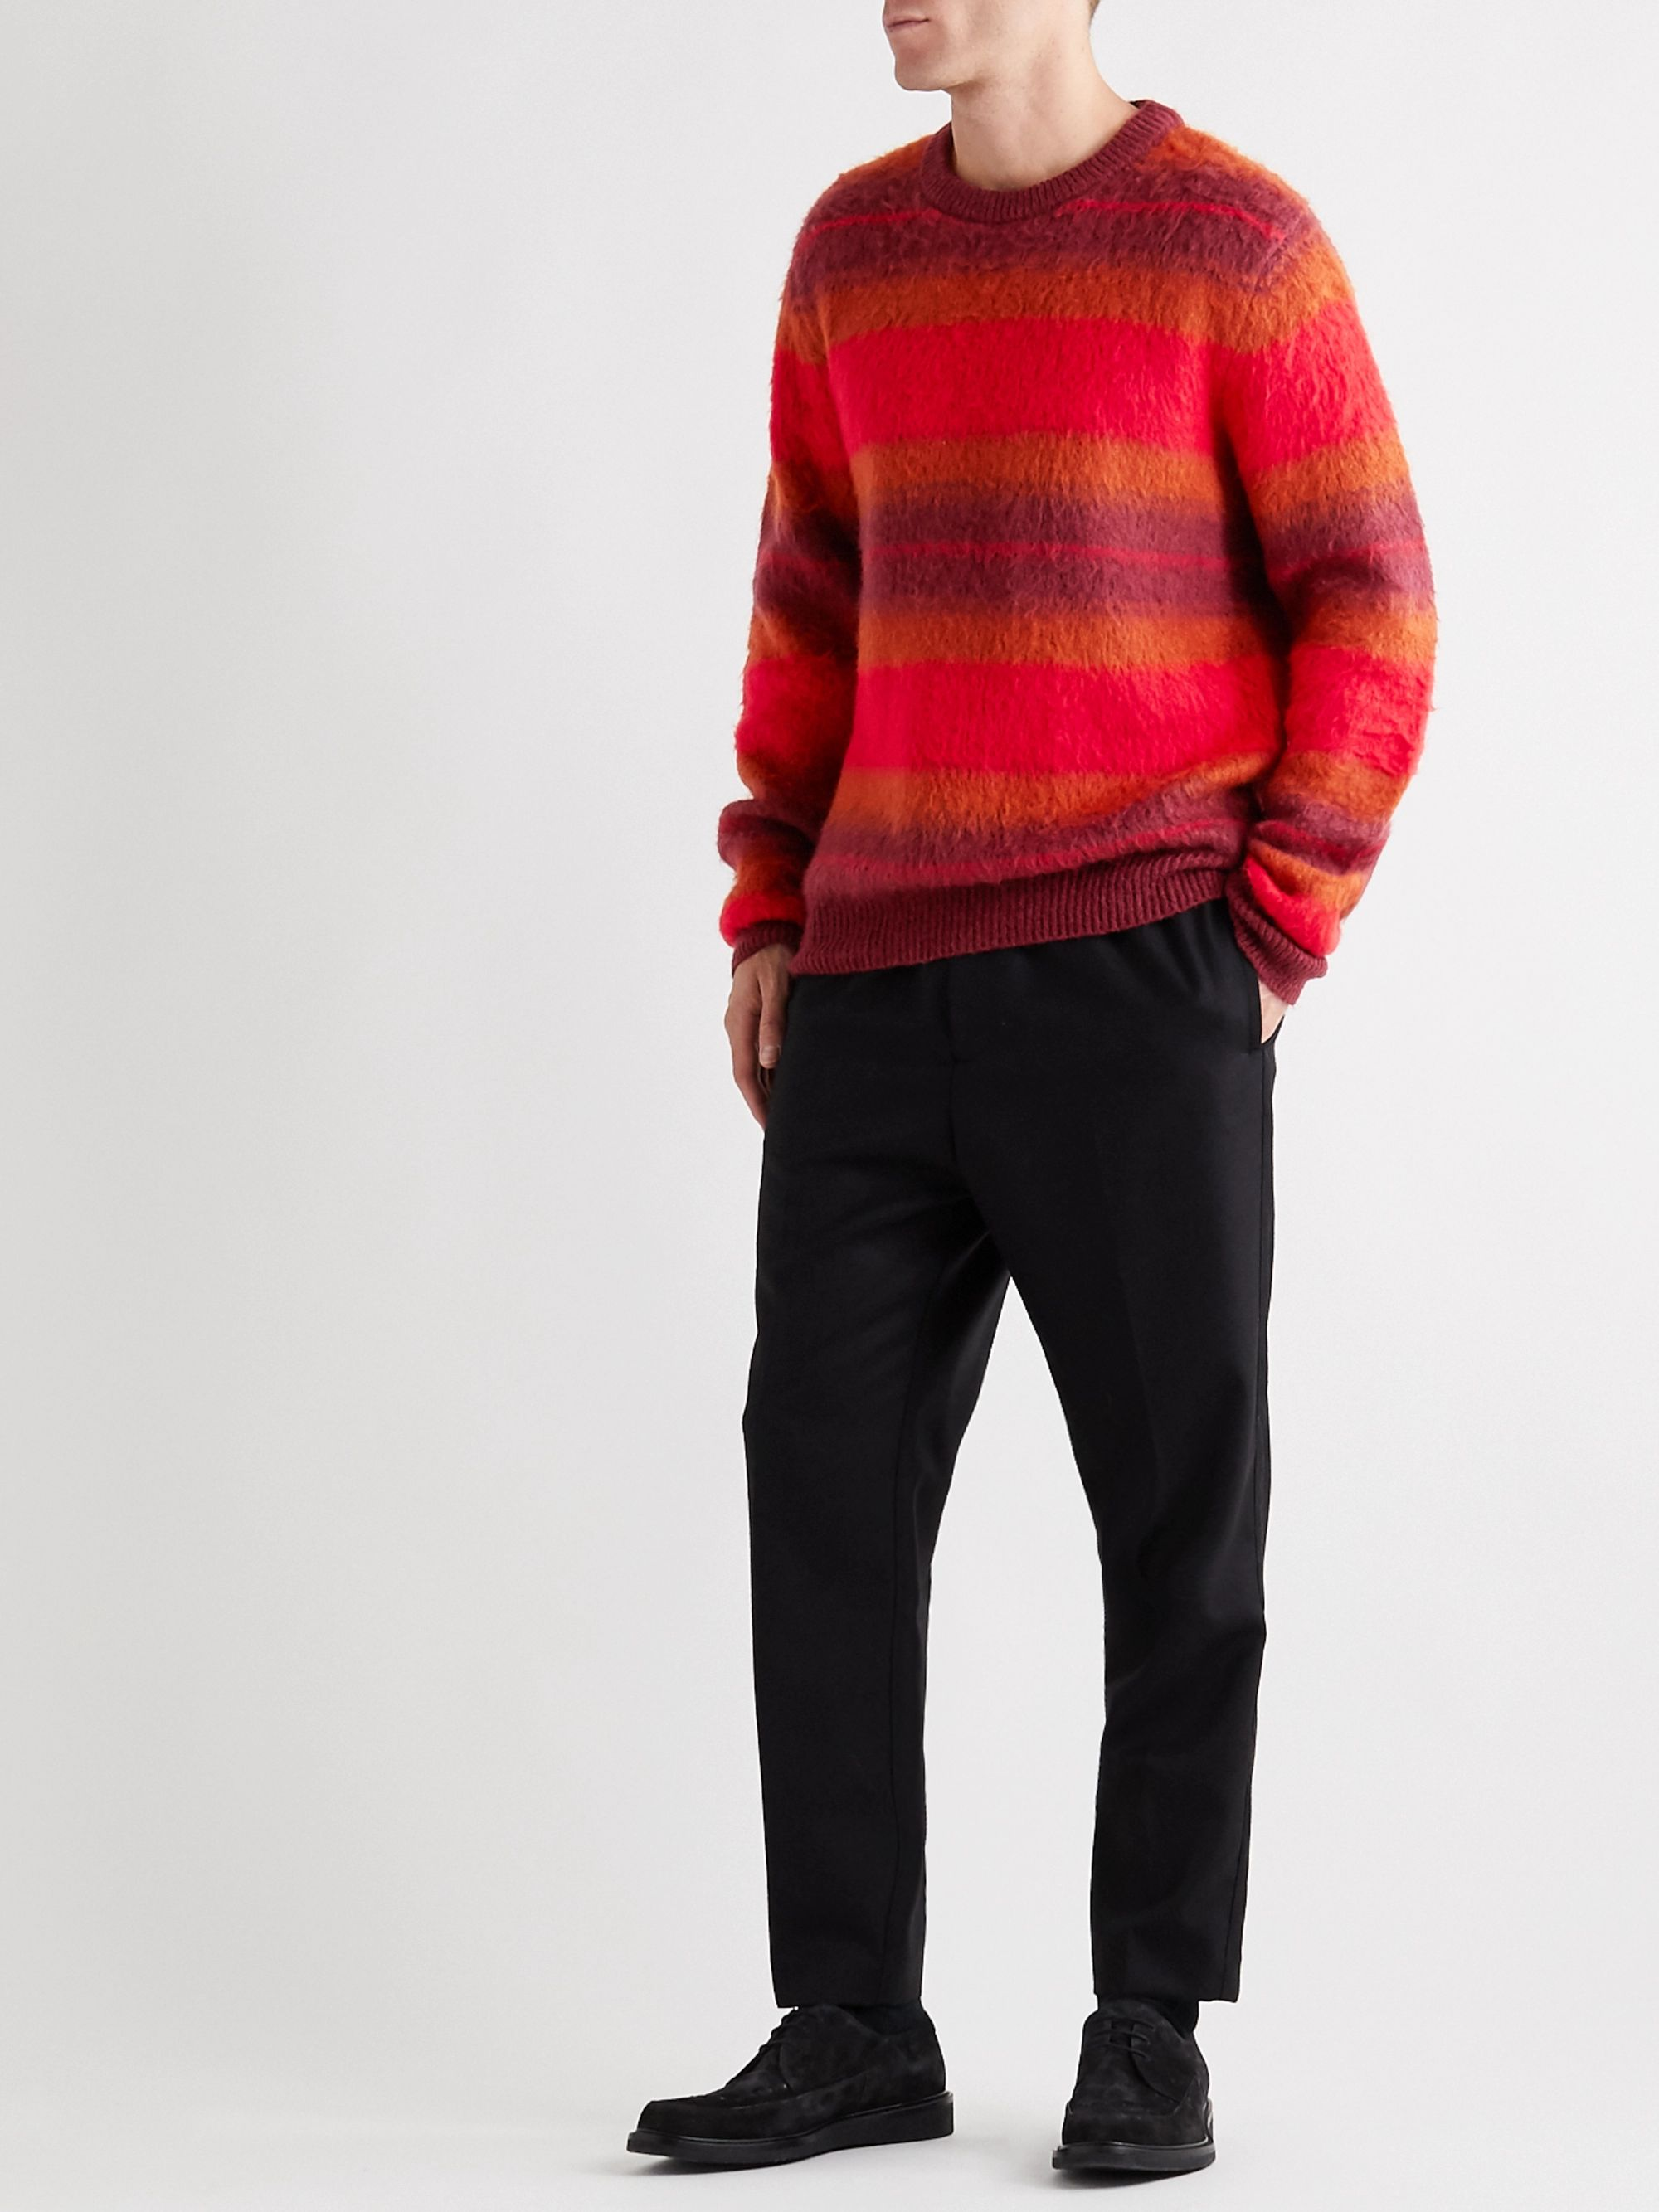 Mr P. Striped Brushed-Knit Sweater